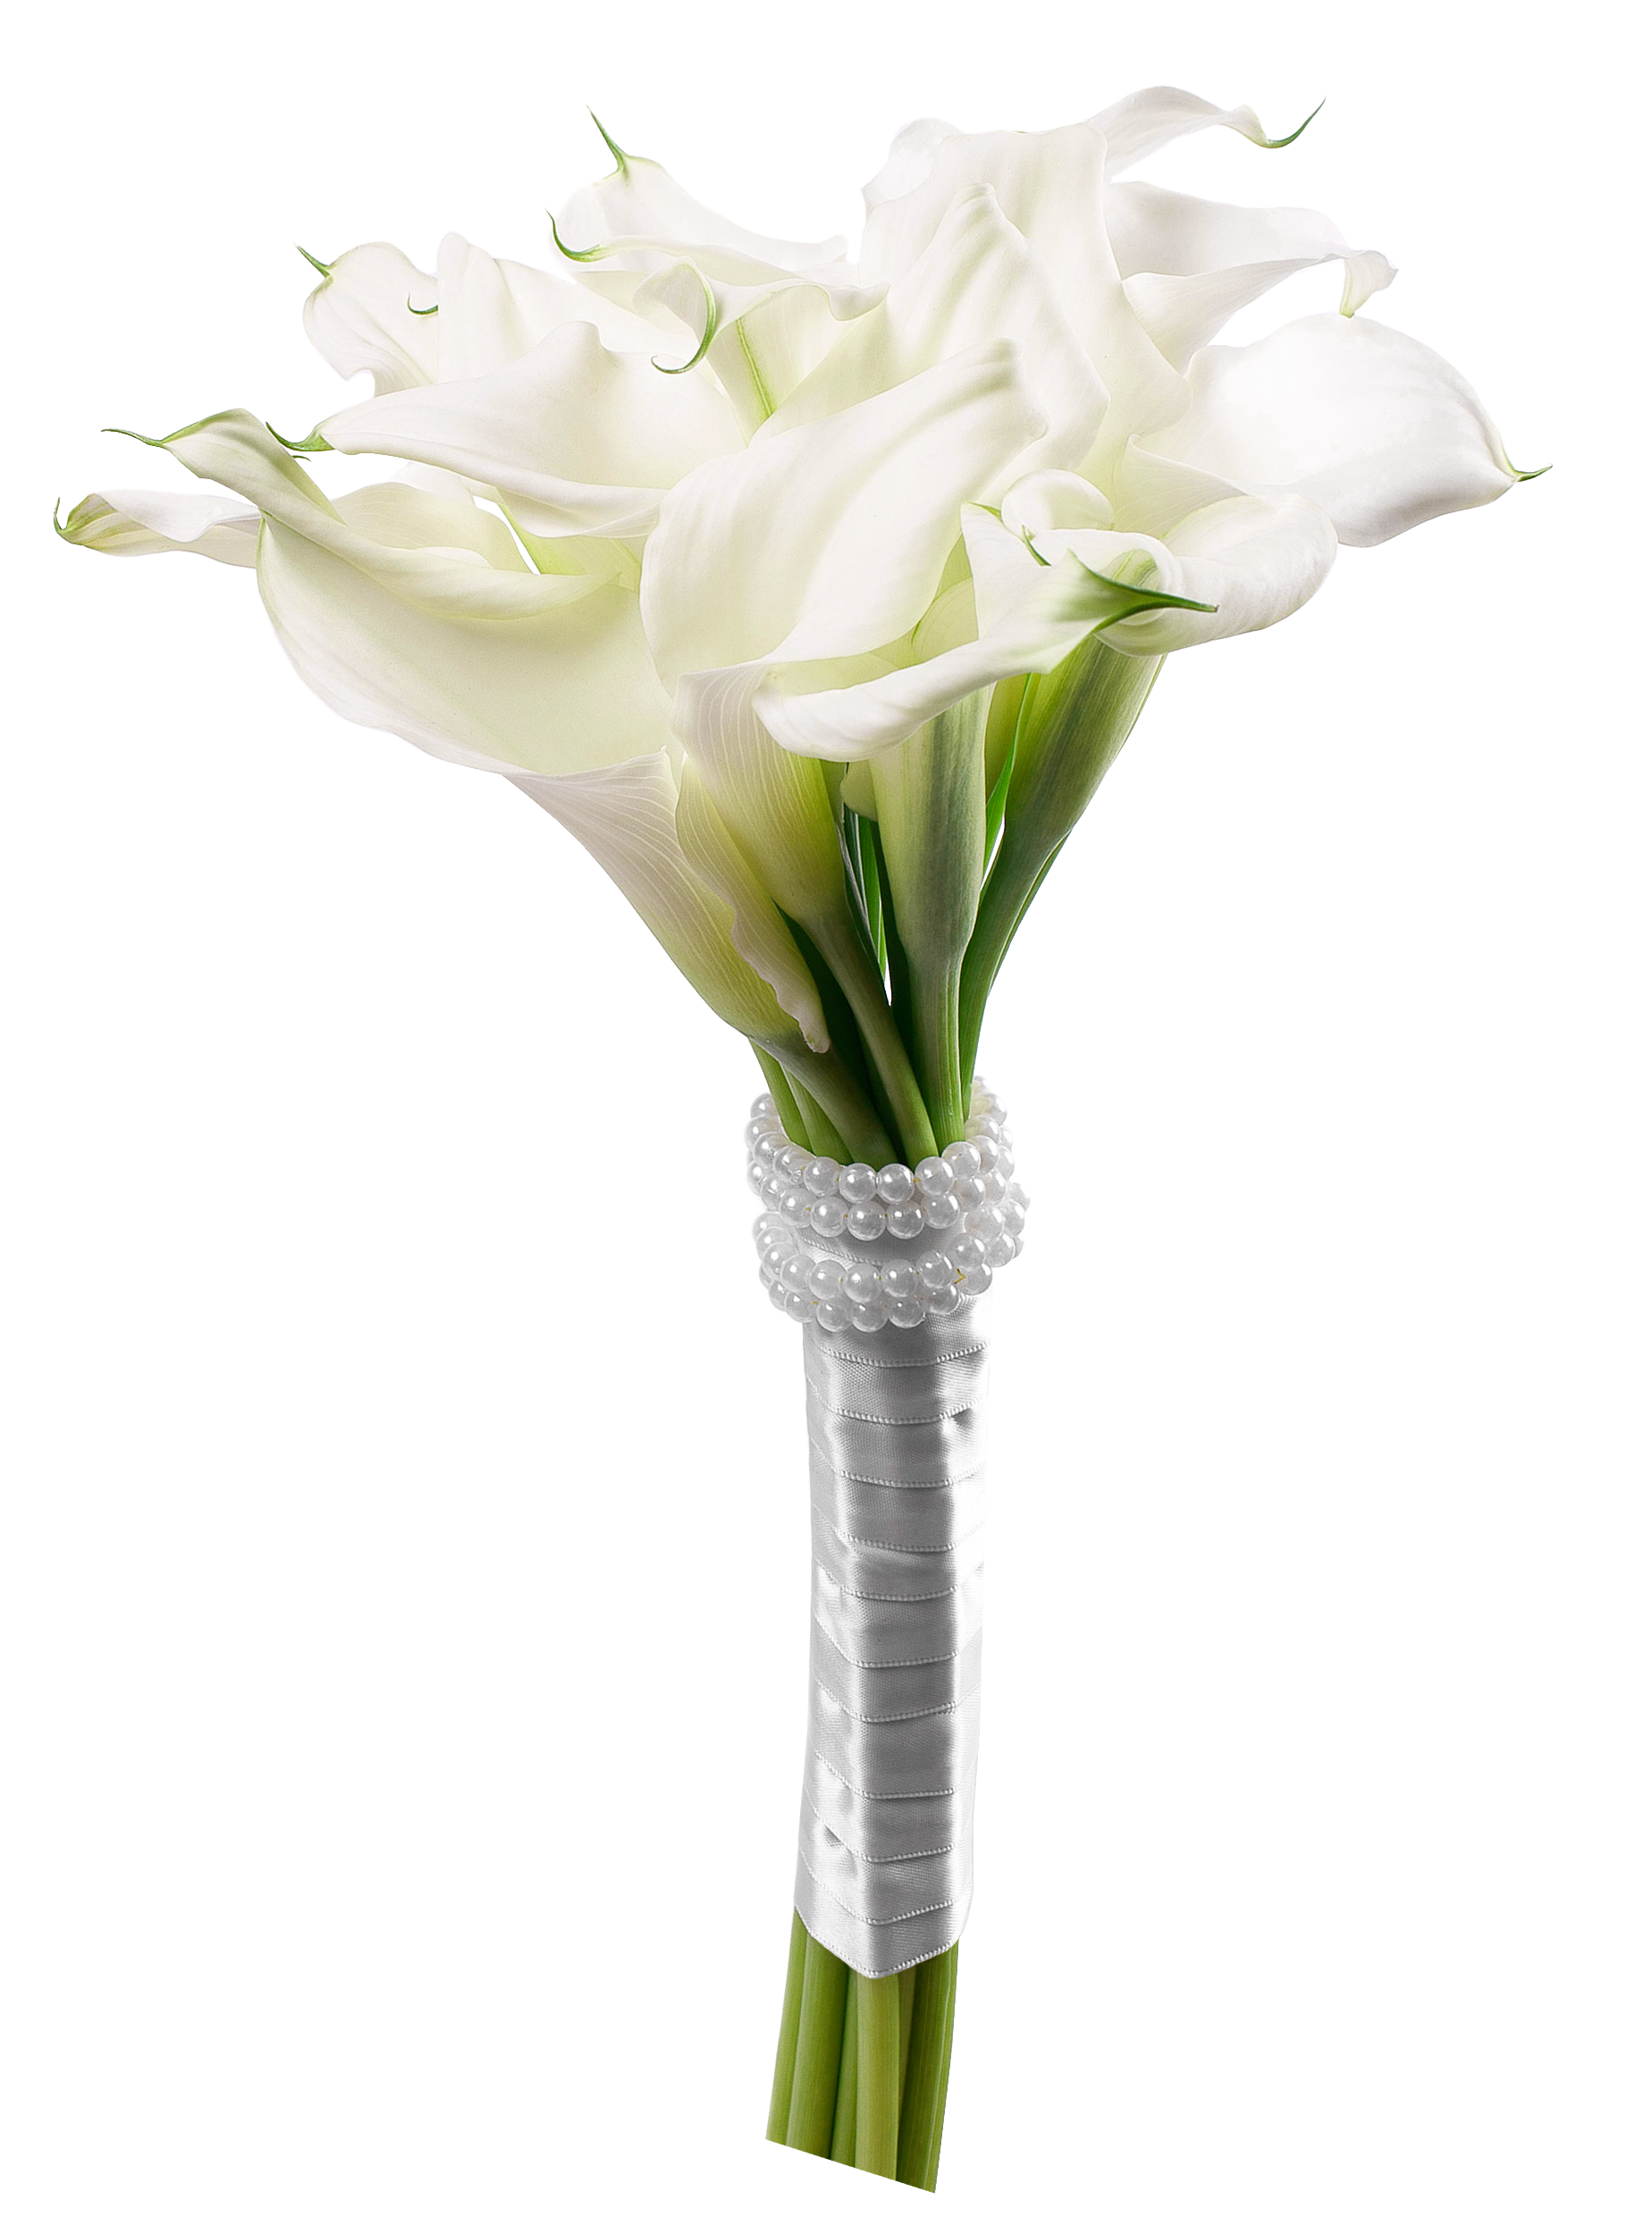 Calla lily bouquet black and white clipart graphic free Calla Lily Bouquet PNG Clip Art - Best WEB Clipart graphic free